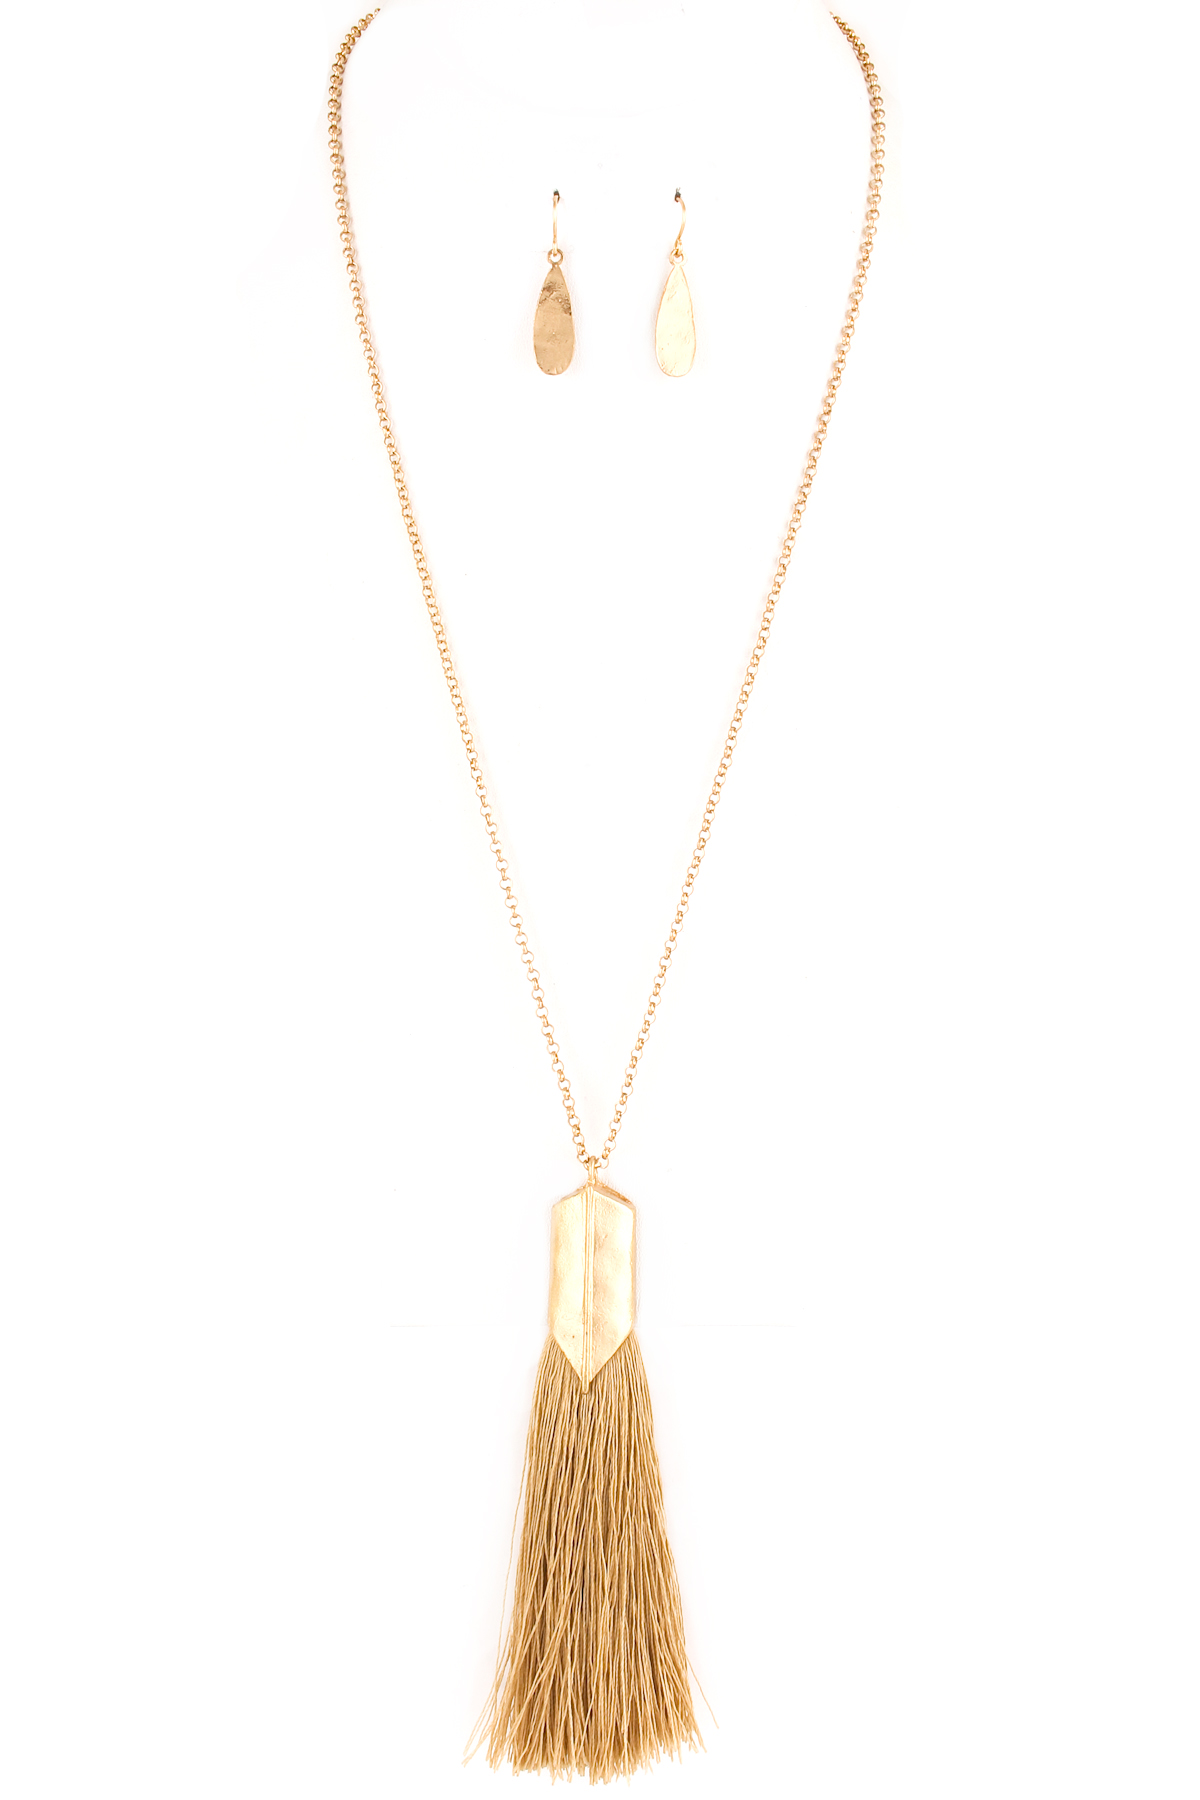 Threaded chain link tassel necklace set necklaces